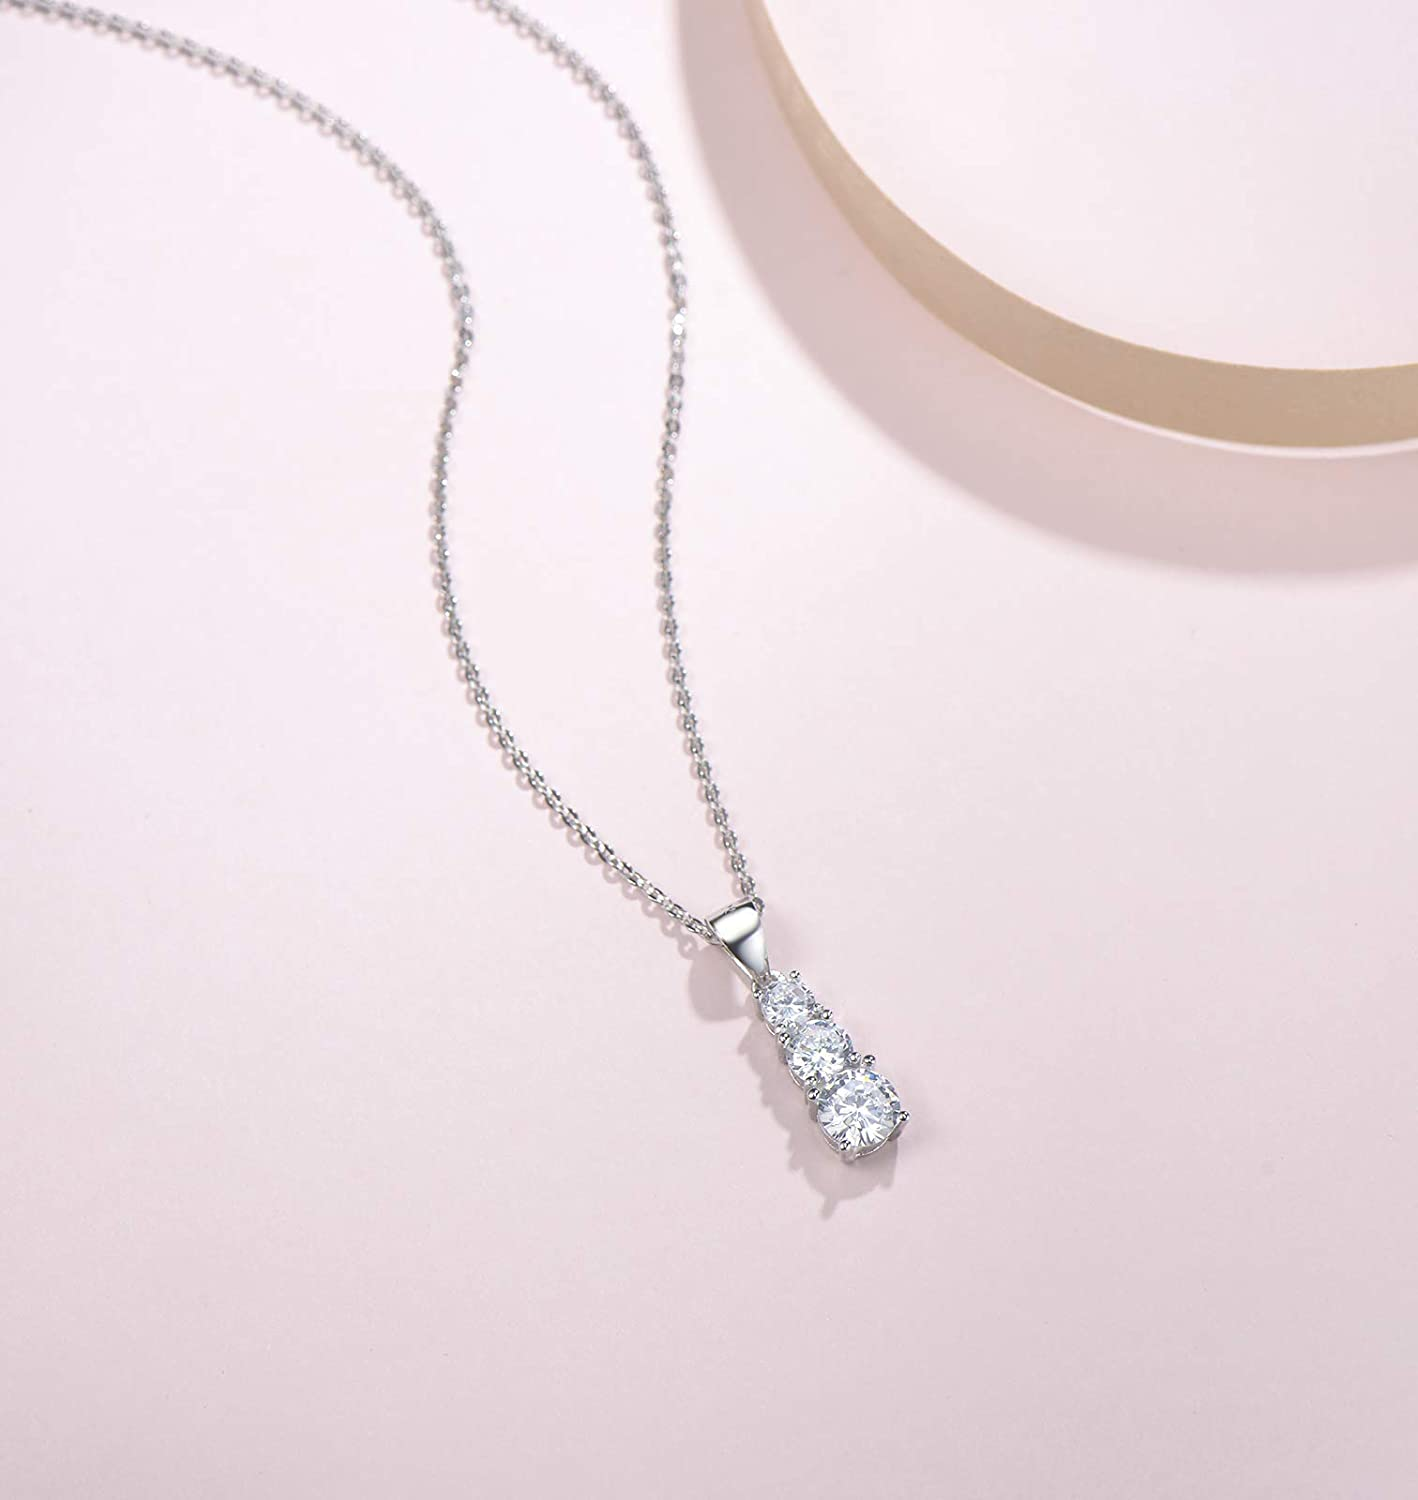 2 Extender FANCIME Rhodium Plated 925 Sterling Silver Round 3 Stone CZ Cubic Zirconia Dangle Pendant Wedding Bridal Bridesmaid Prom Necklace For Women Girls 16